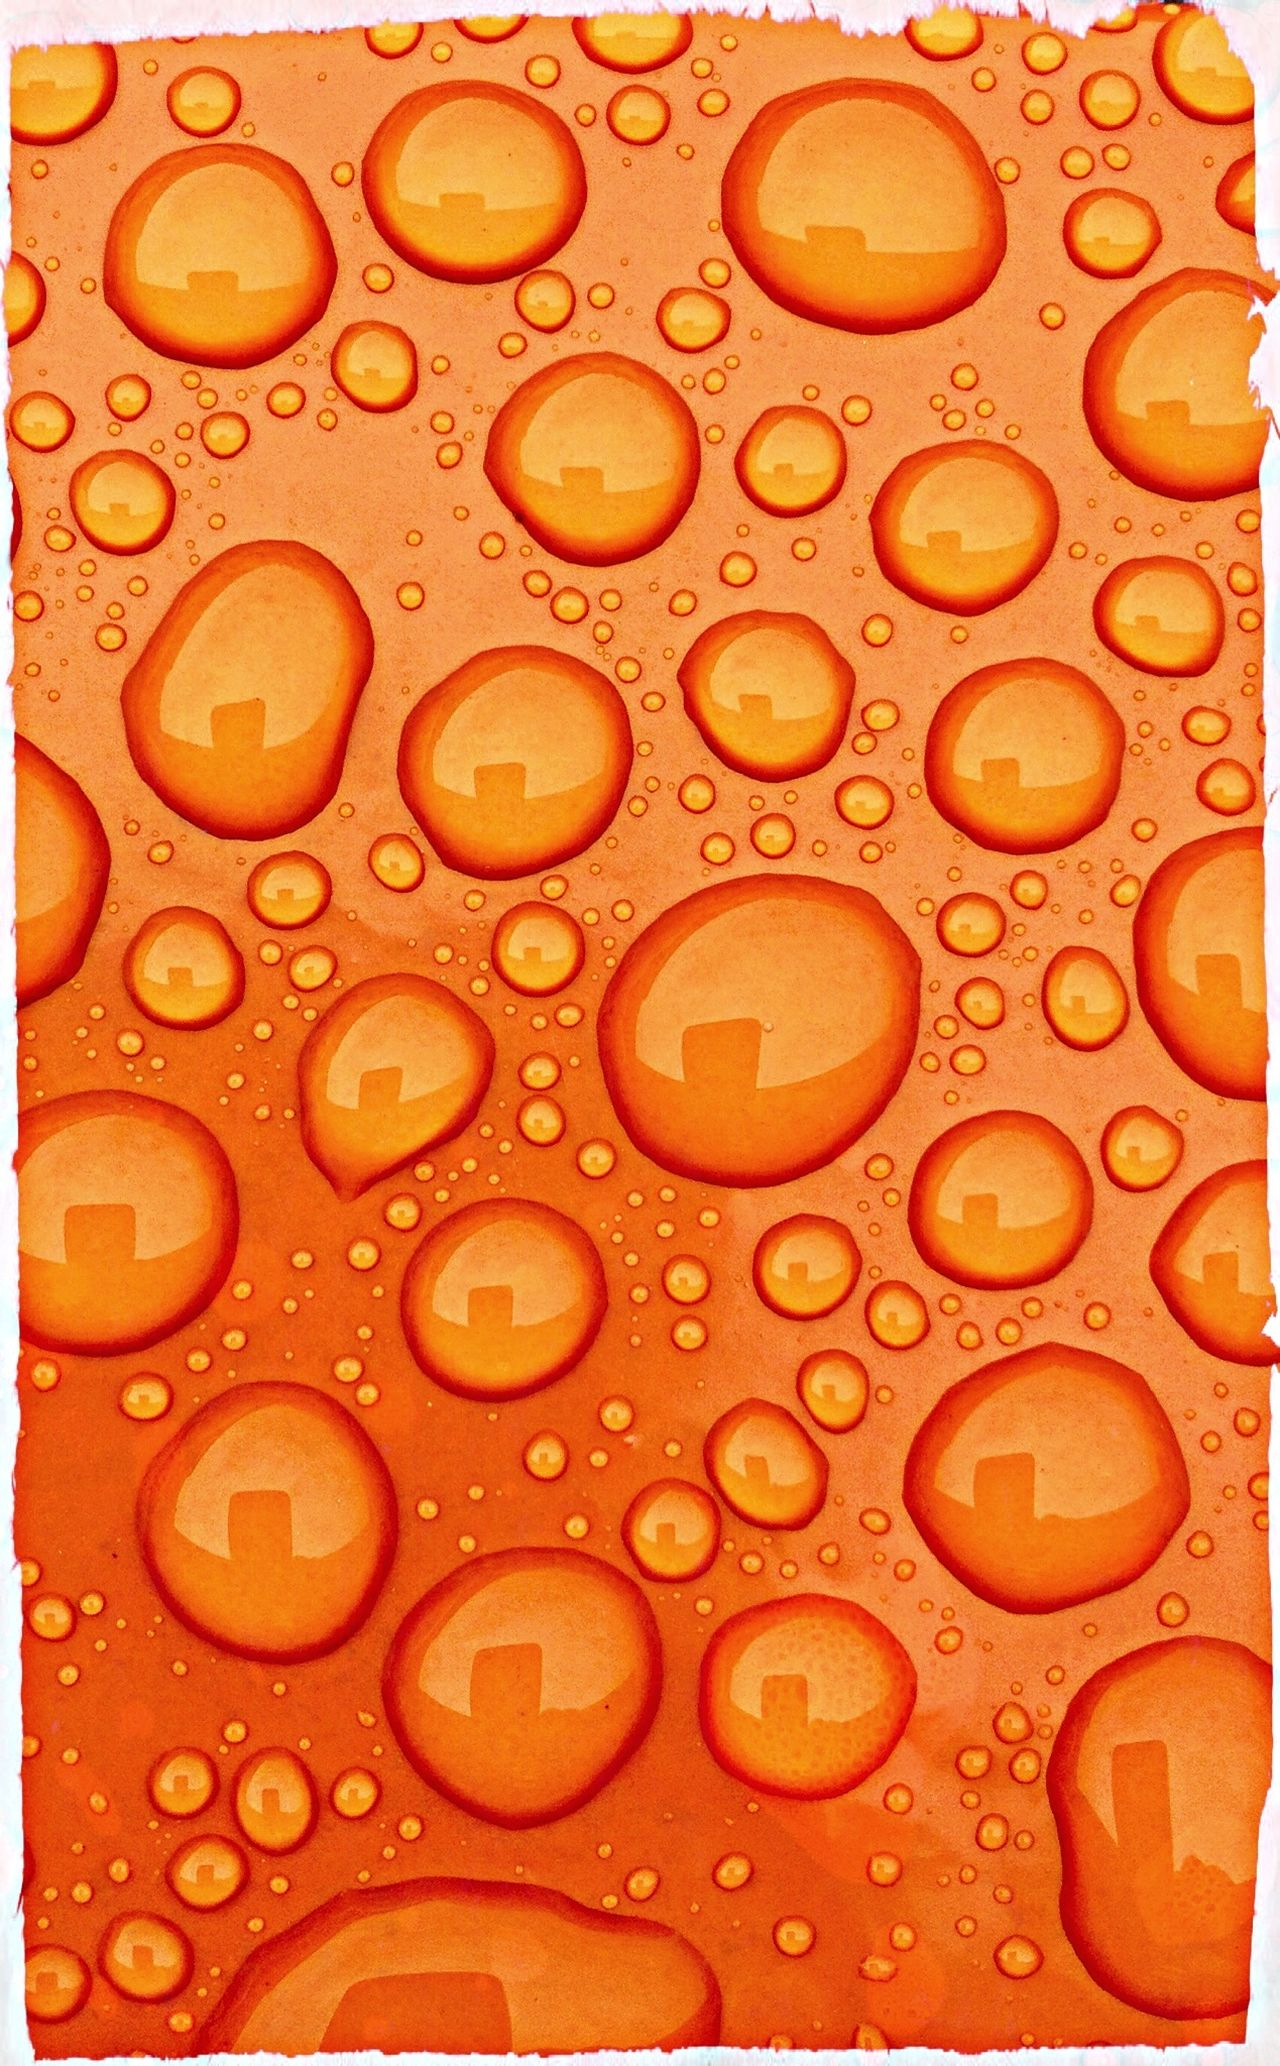 Extreme, EXTREME Closeup Orange Rain Rain Drops supporting the Dutch team.. Ofcourse We Are Onefootball